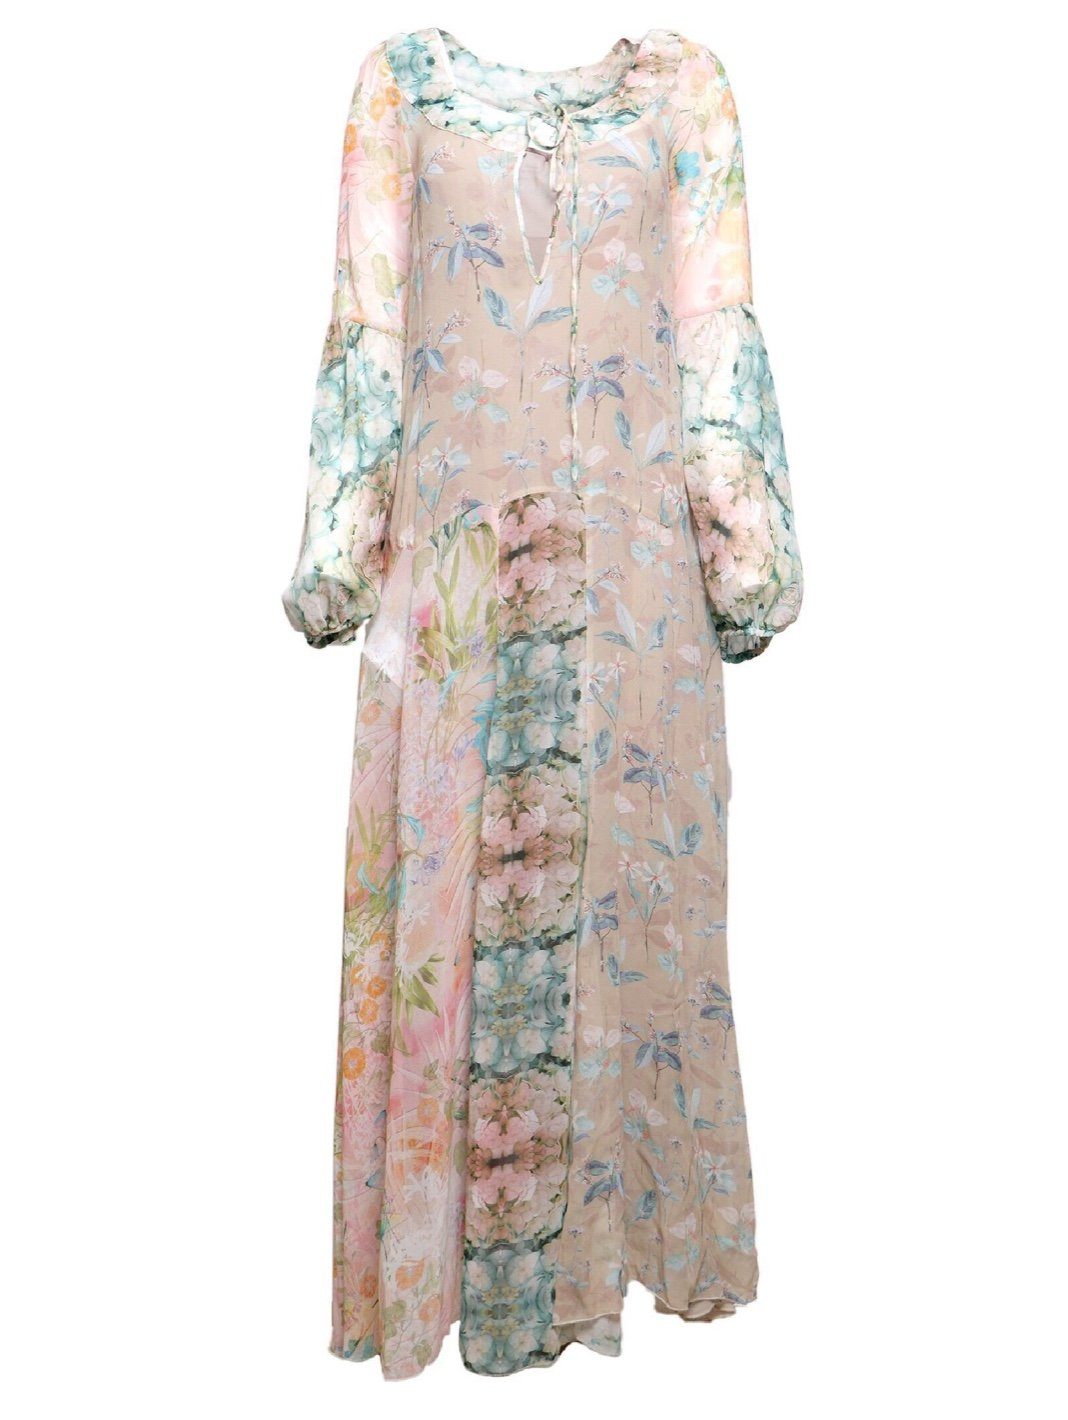 Floral Print Silk Dress - The Bobby Boga